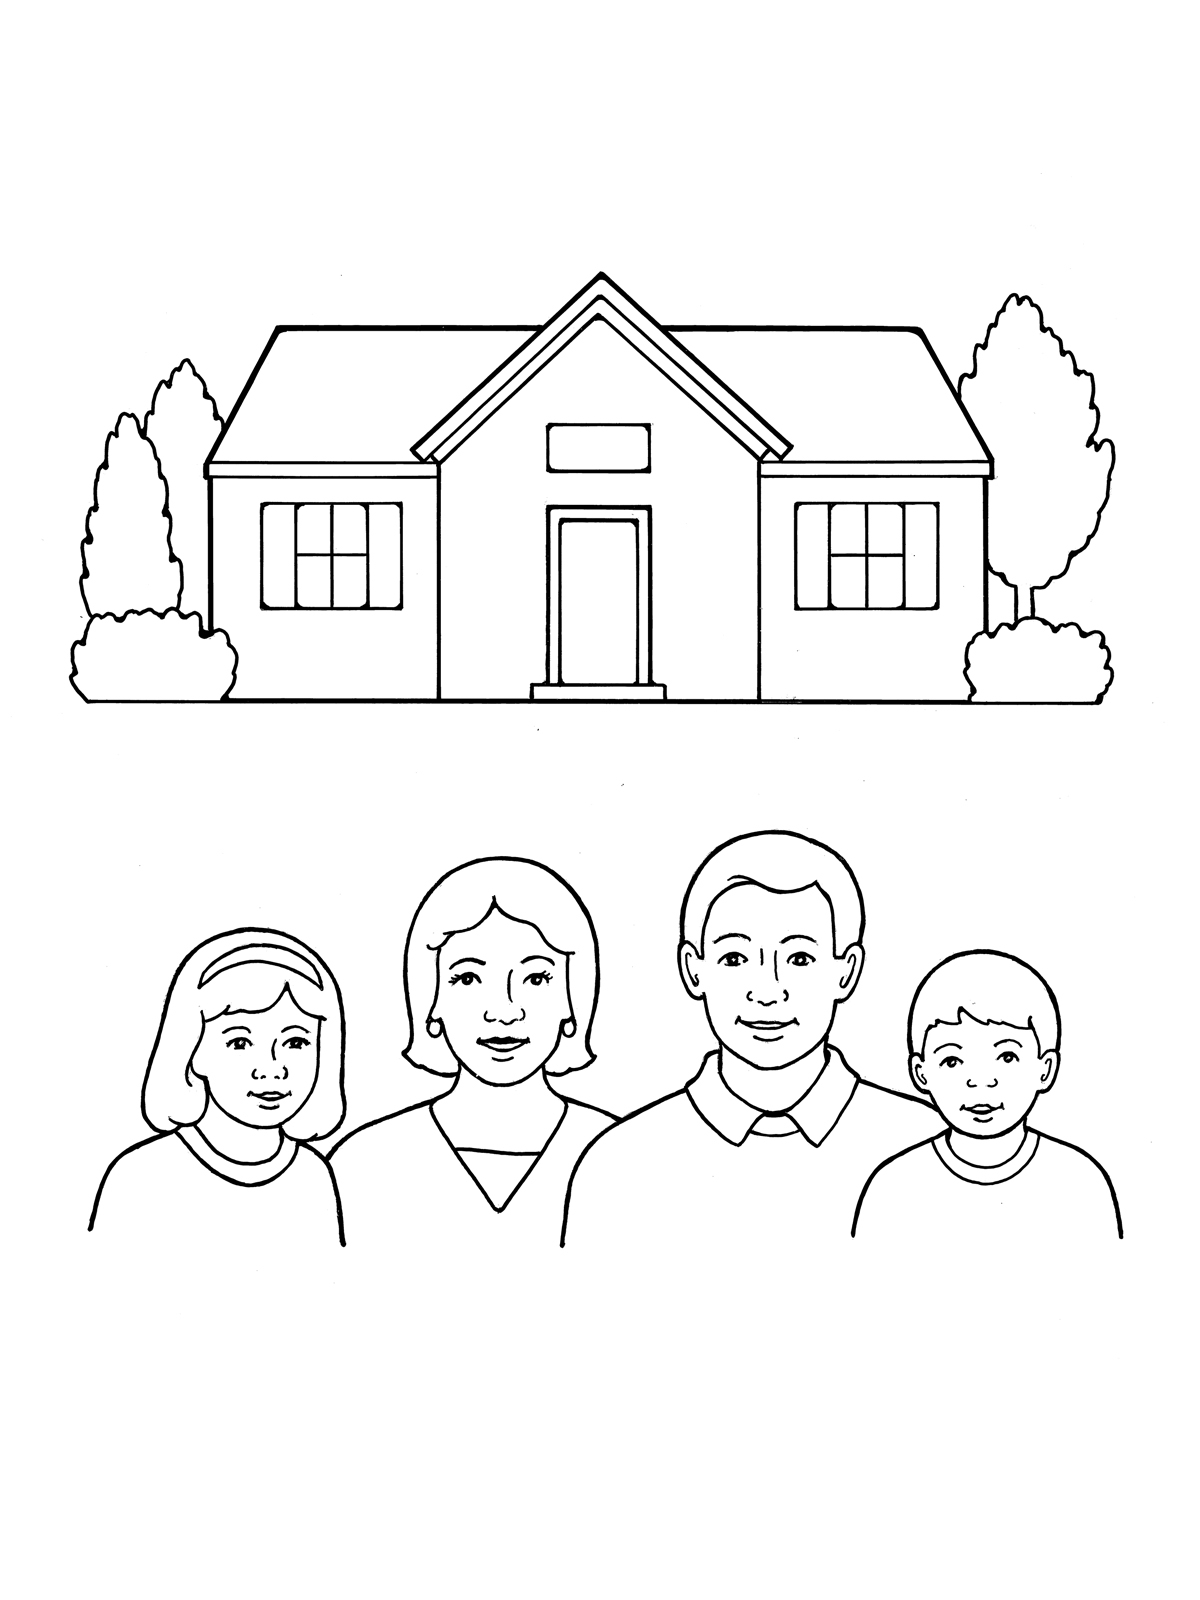 free coloring pages home and family | Home and Family